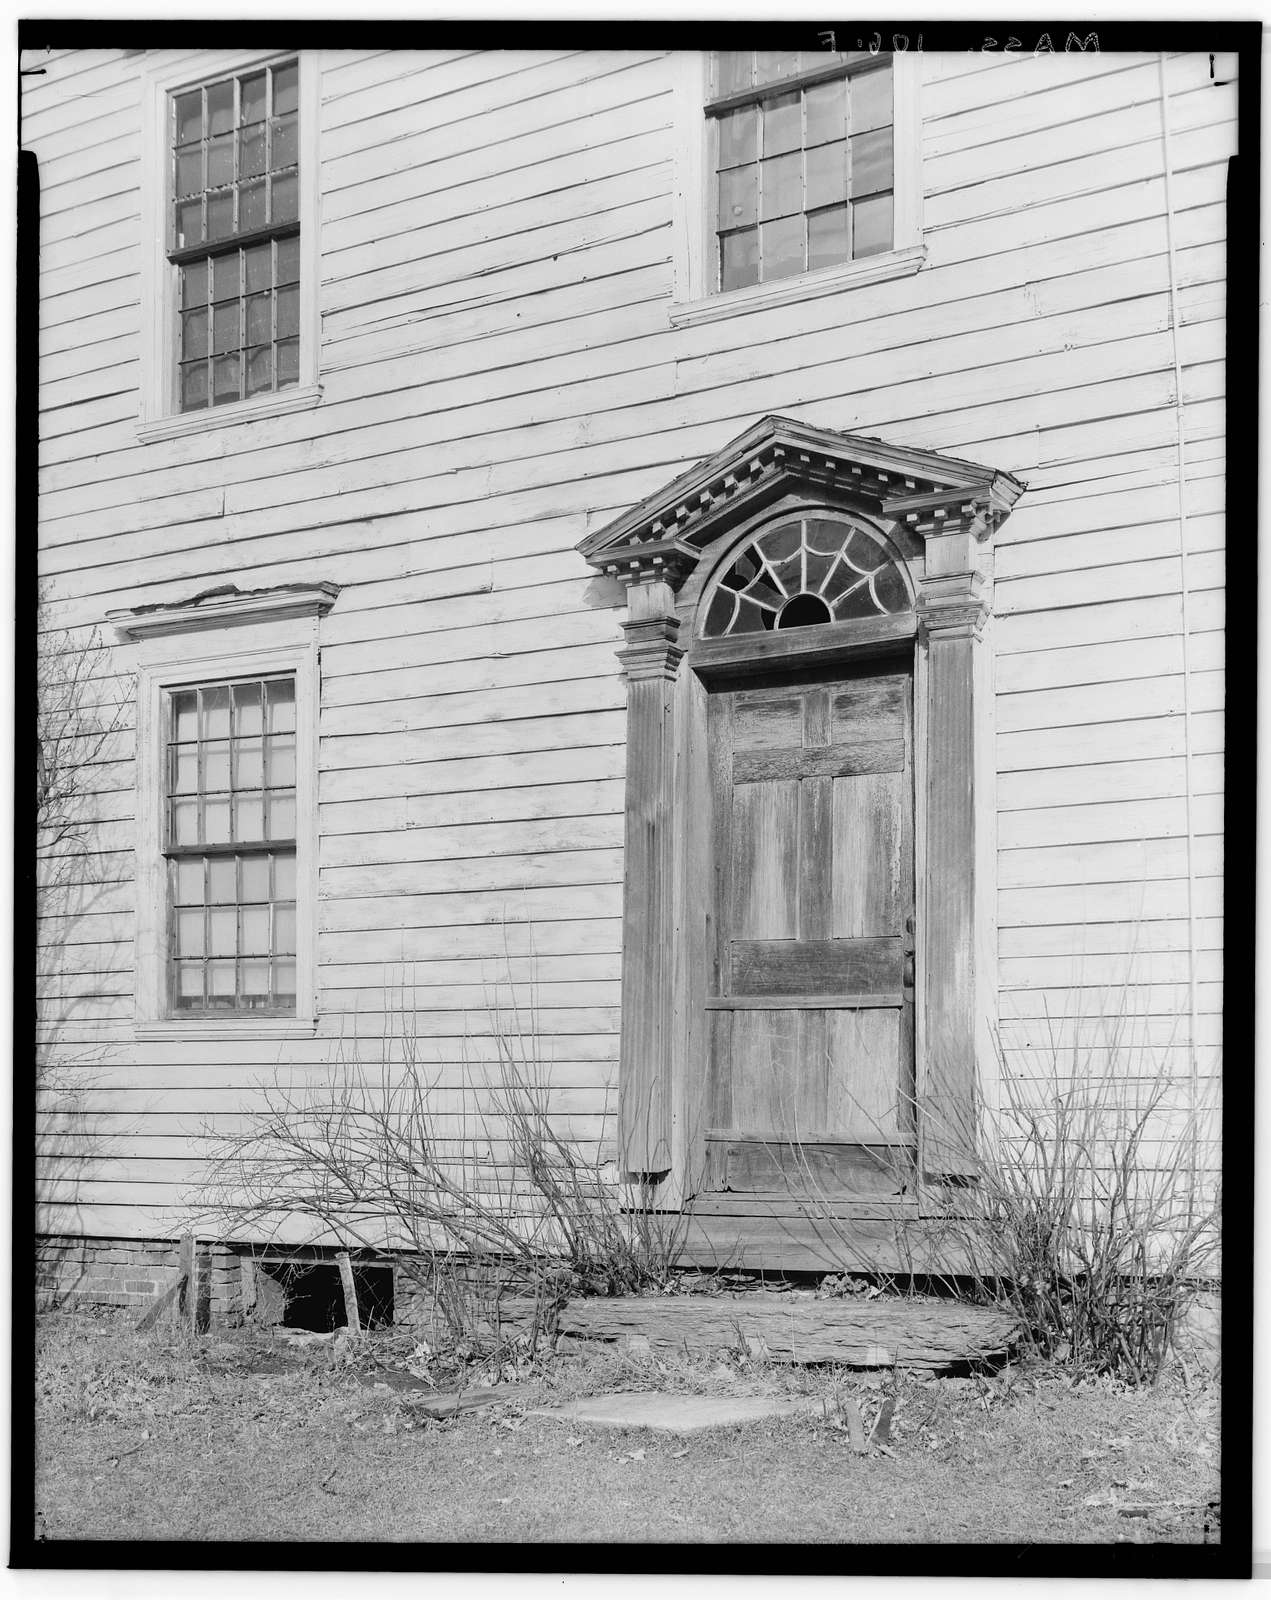 Titus Deming House, New Ashford Road, South Williamstown, Berkshire County, MA